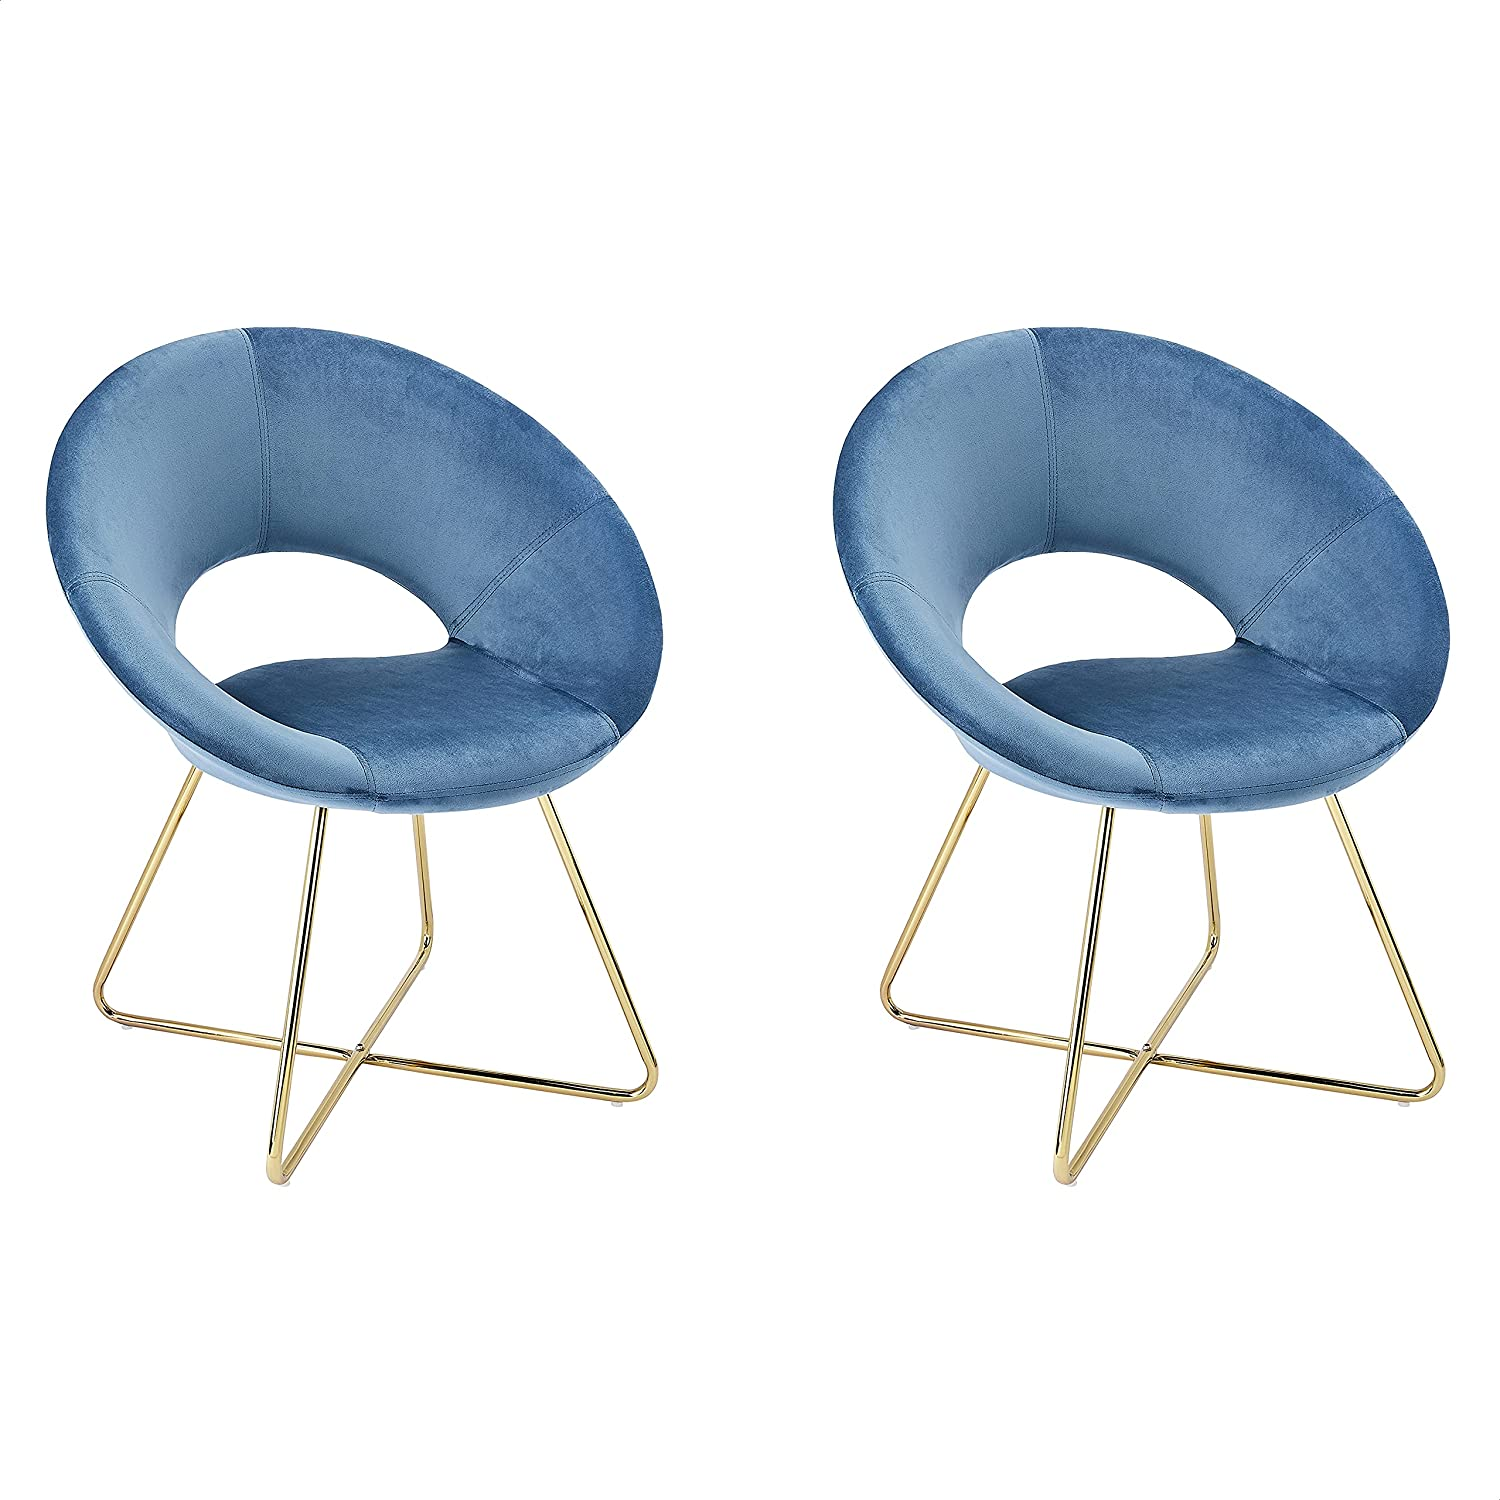 CangLong Modern Velvet Accent Chairs Upholstered Chairs Make-up Stool Home Office Guest Reception Chairs Dining Chair Leisure Lounge Chairs with Golden Legs Set of 2, Blue (KU-191338)